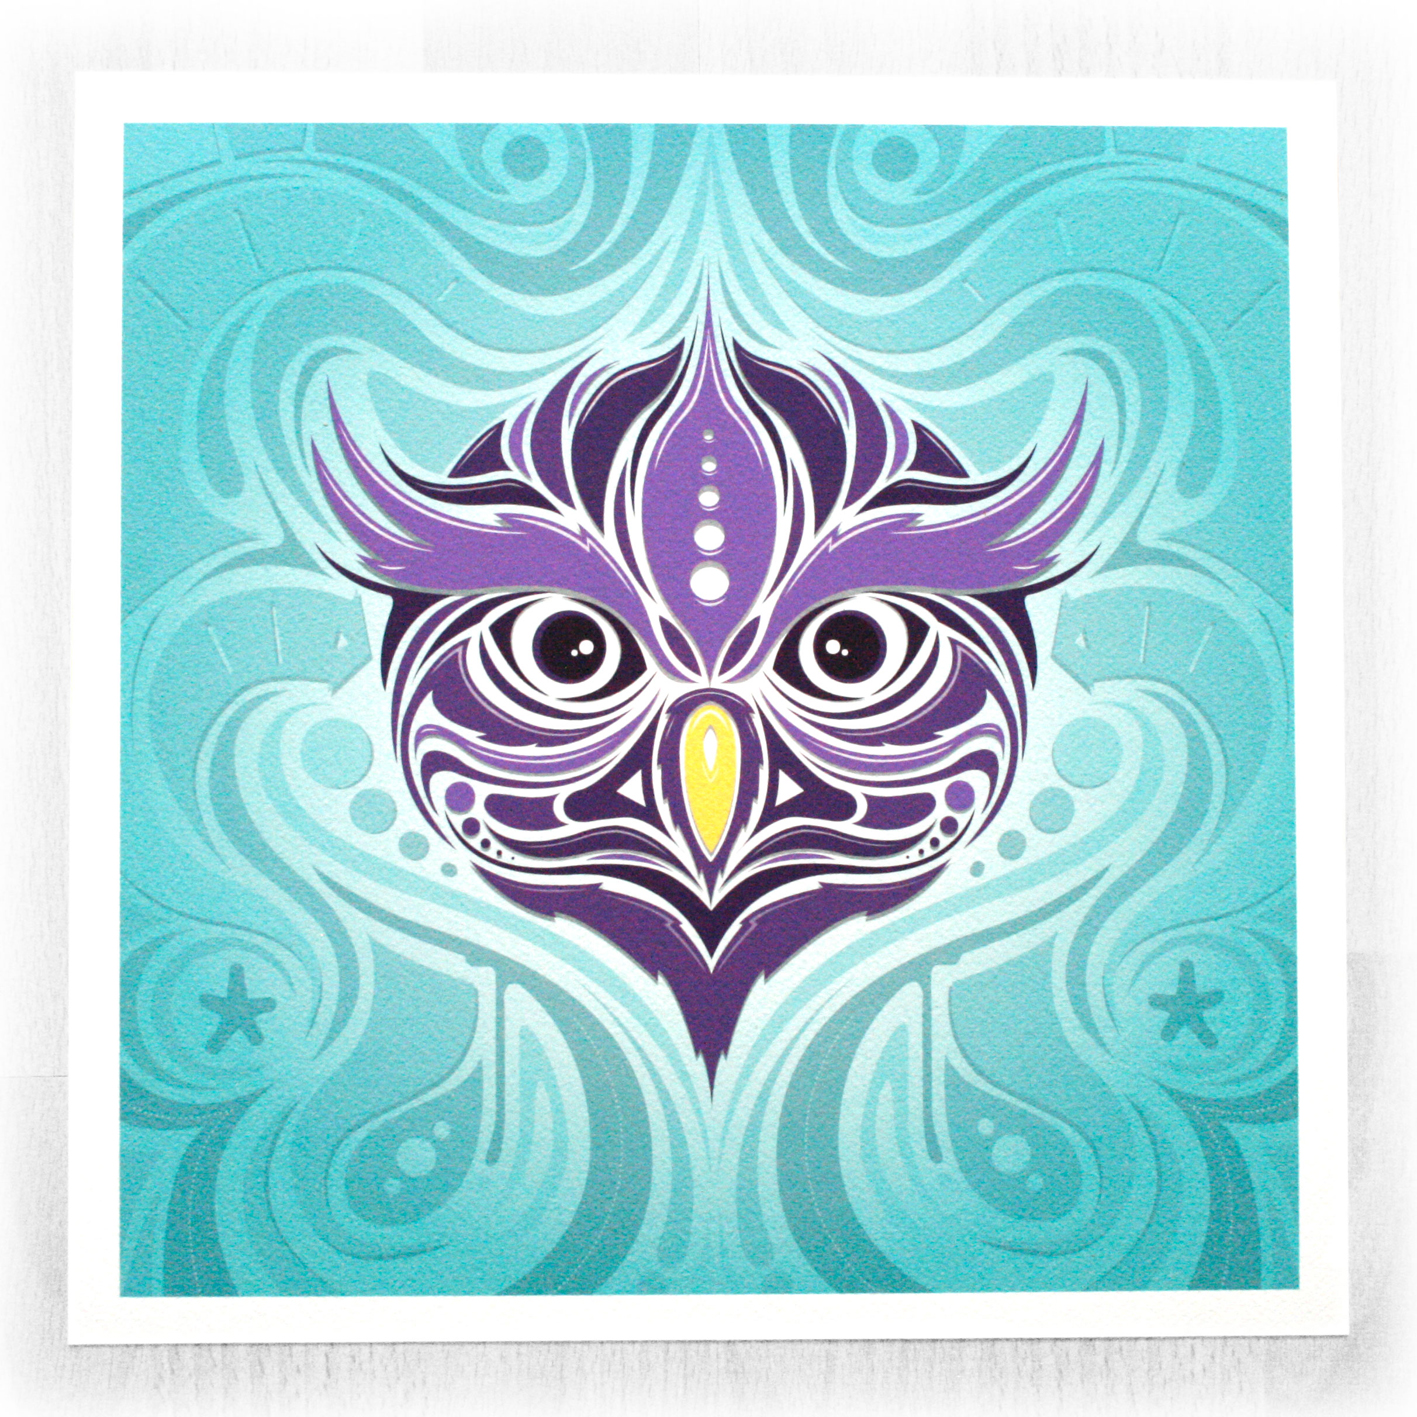 Wise_owl_2